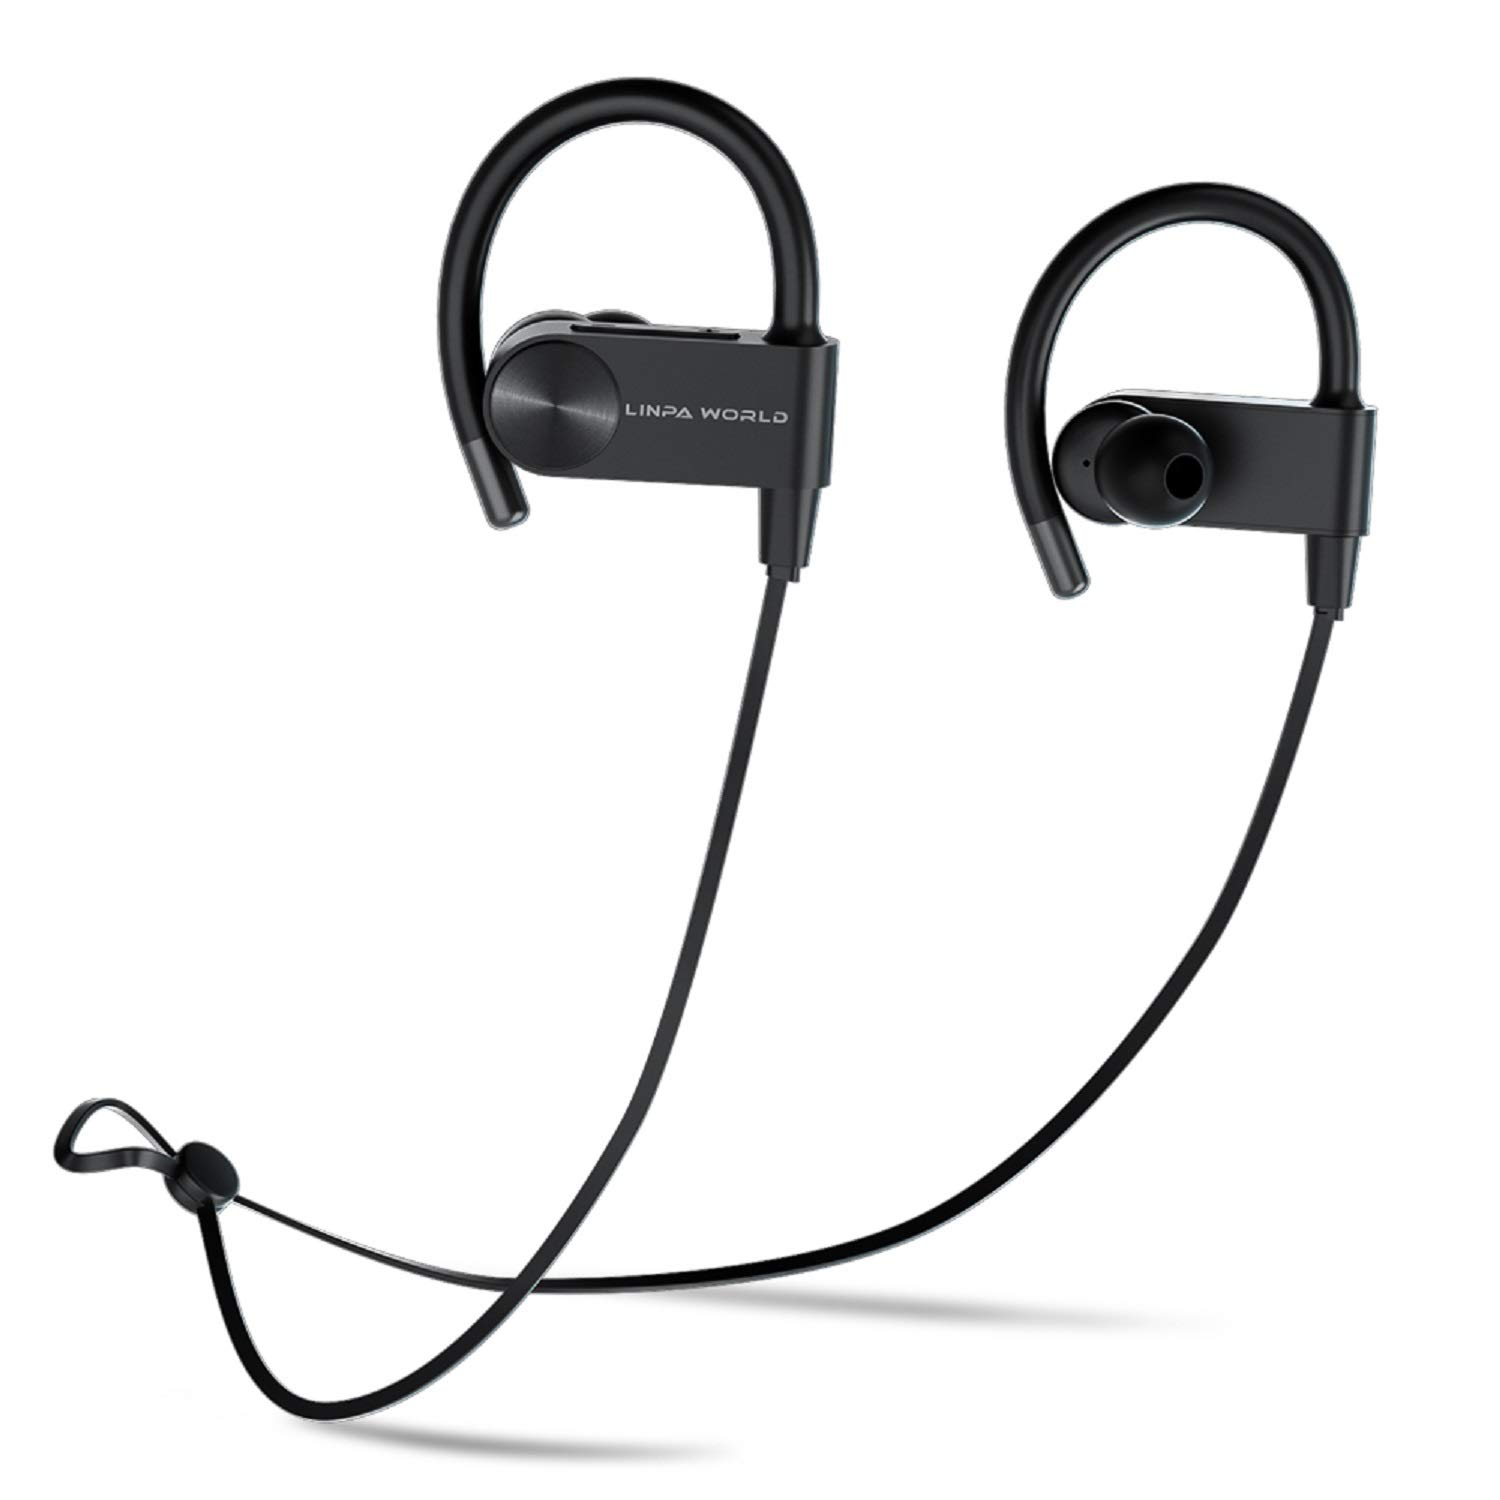 Sports Bluetooth Headphones L LINPA WORLD LEB56 Wireless Earbuds Fast Fuel Waterproof Bluetooth 5.0 HiFi Bass Stereo Earphones with Microphone 12 Hours Playtime for Workout Running Headset-Black